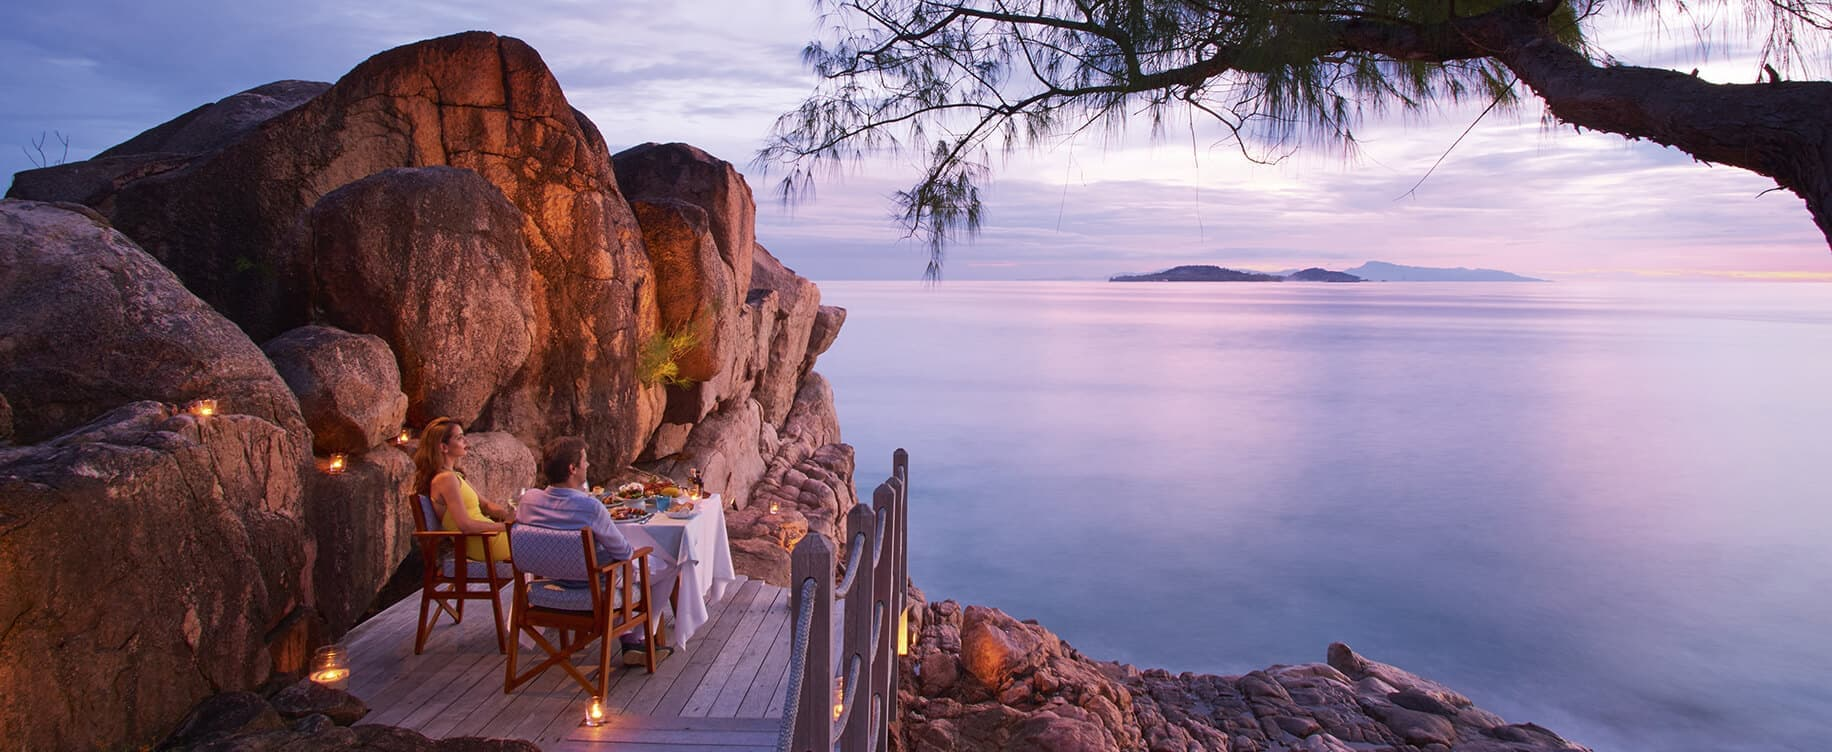 Romantic Dinner in the Seychelles at Constance Lemuria